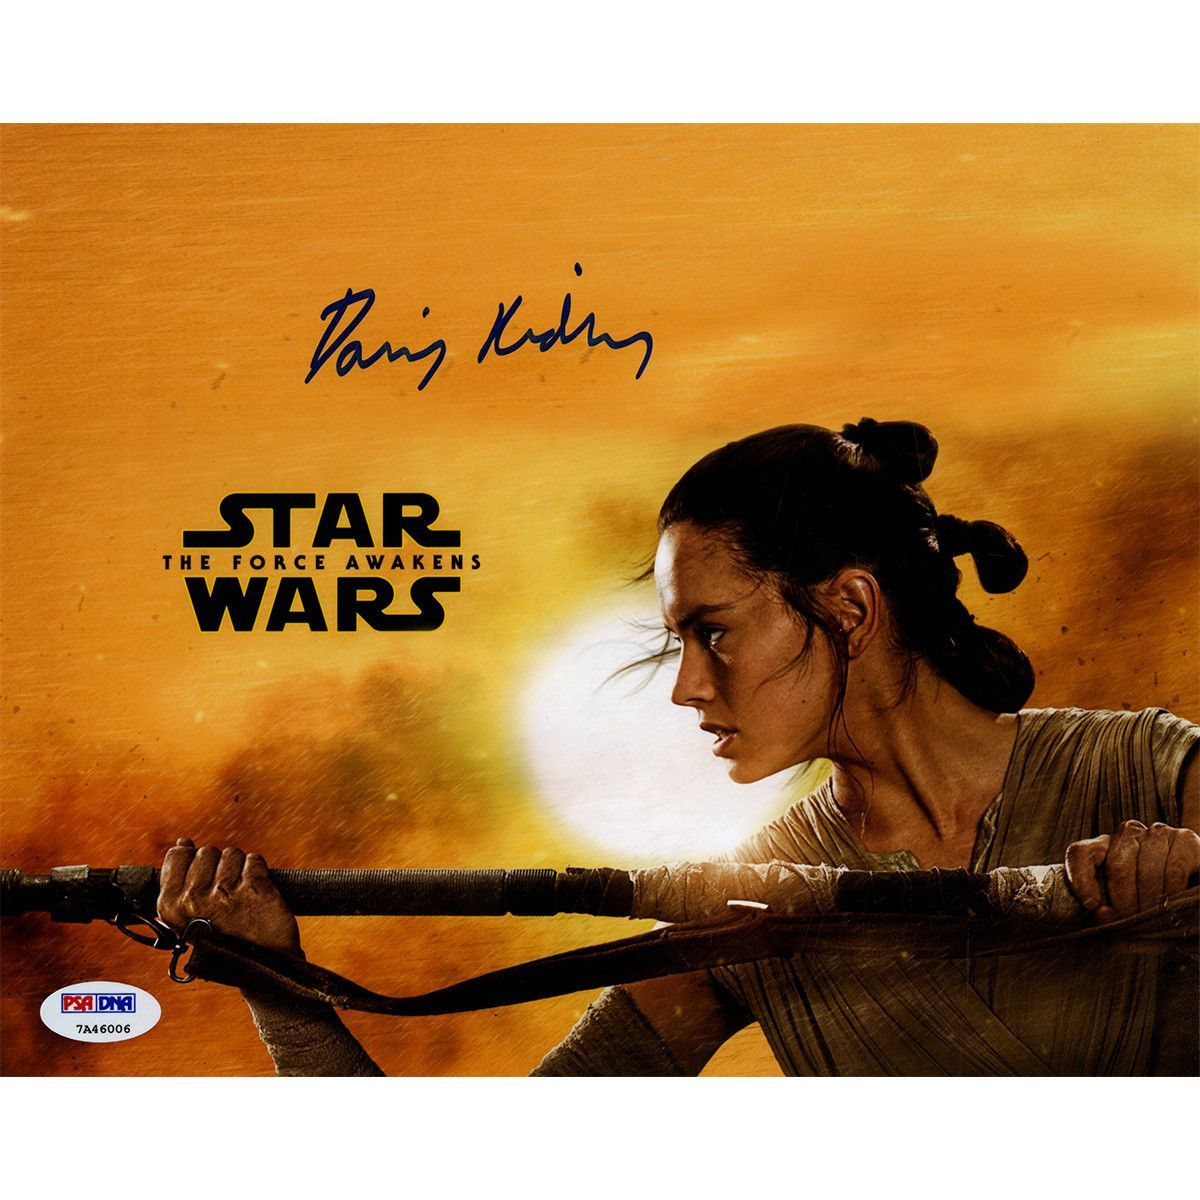 Daisy Ridley Signed Rey Star Wars The Force Awakens Yellow 1200x1200